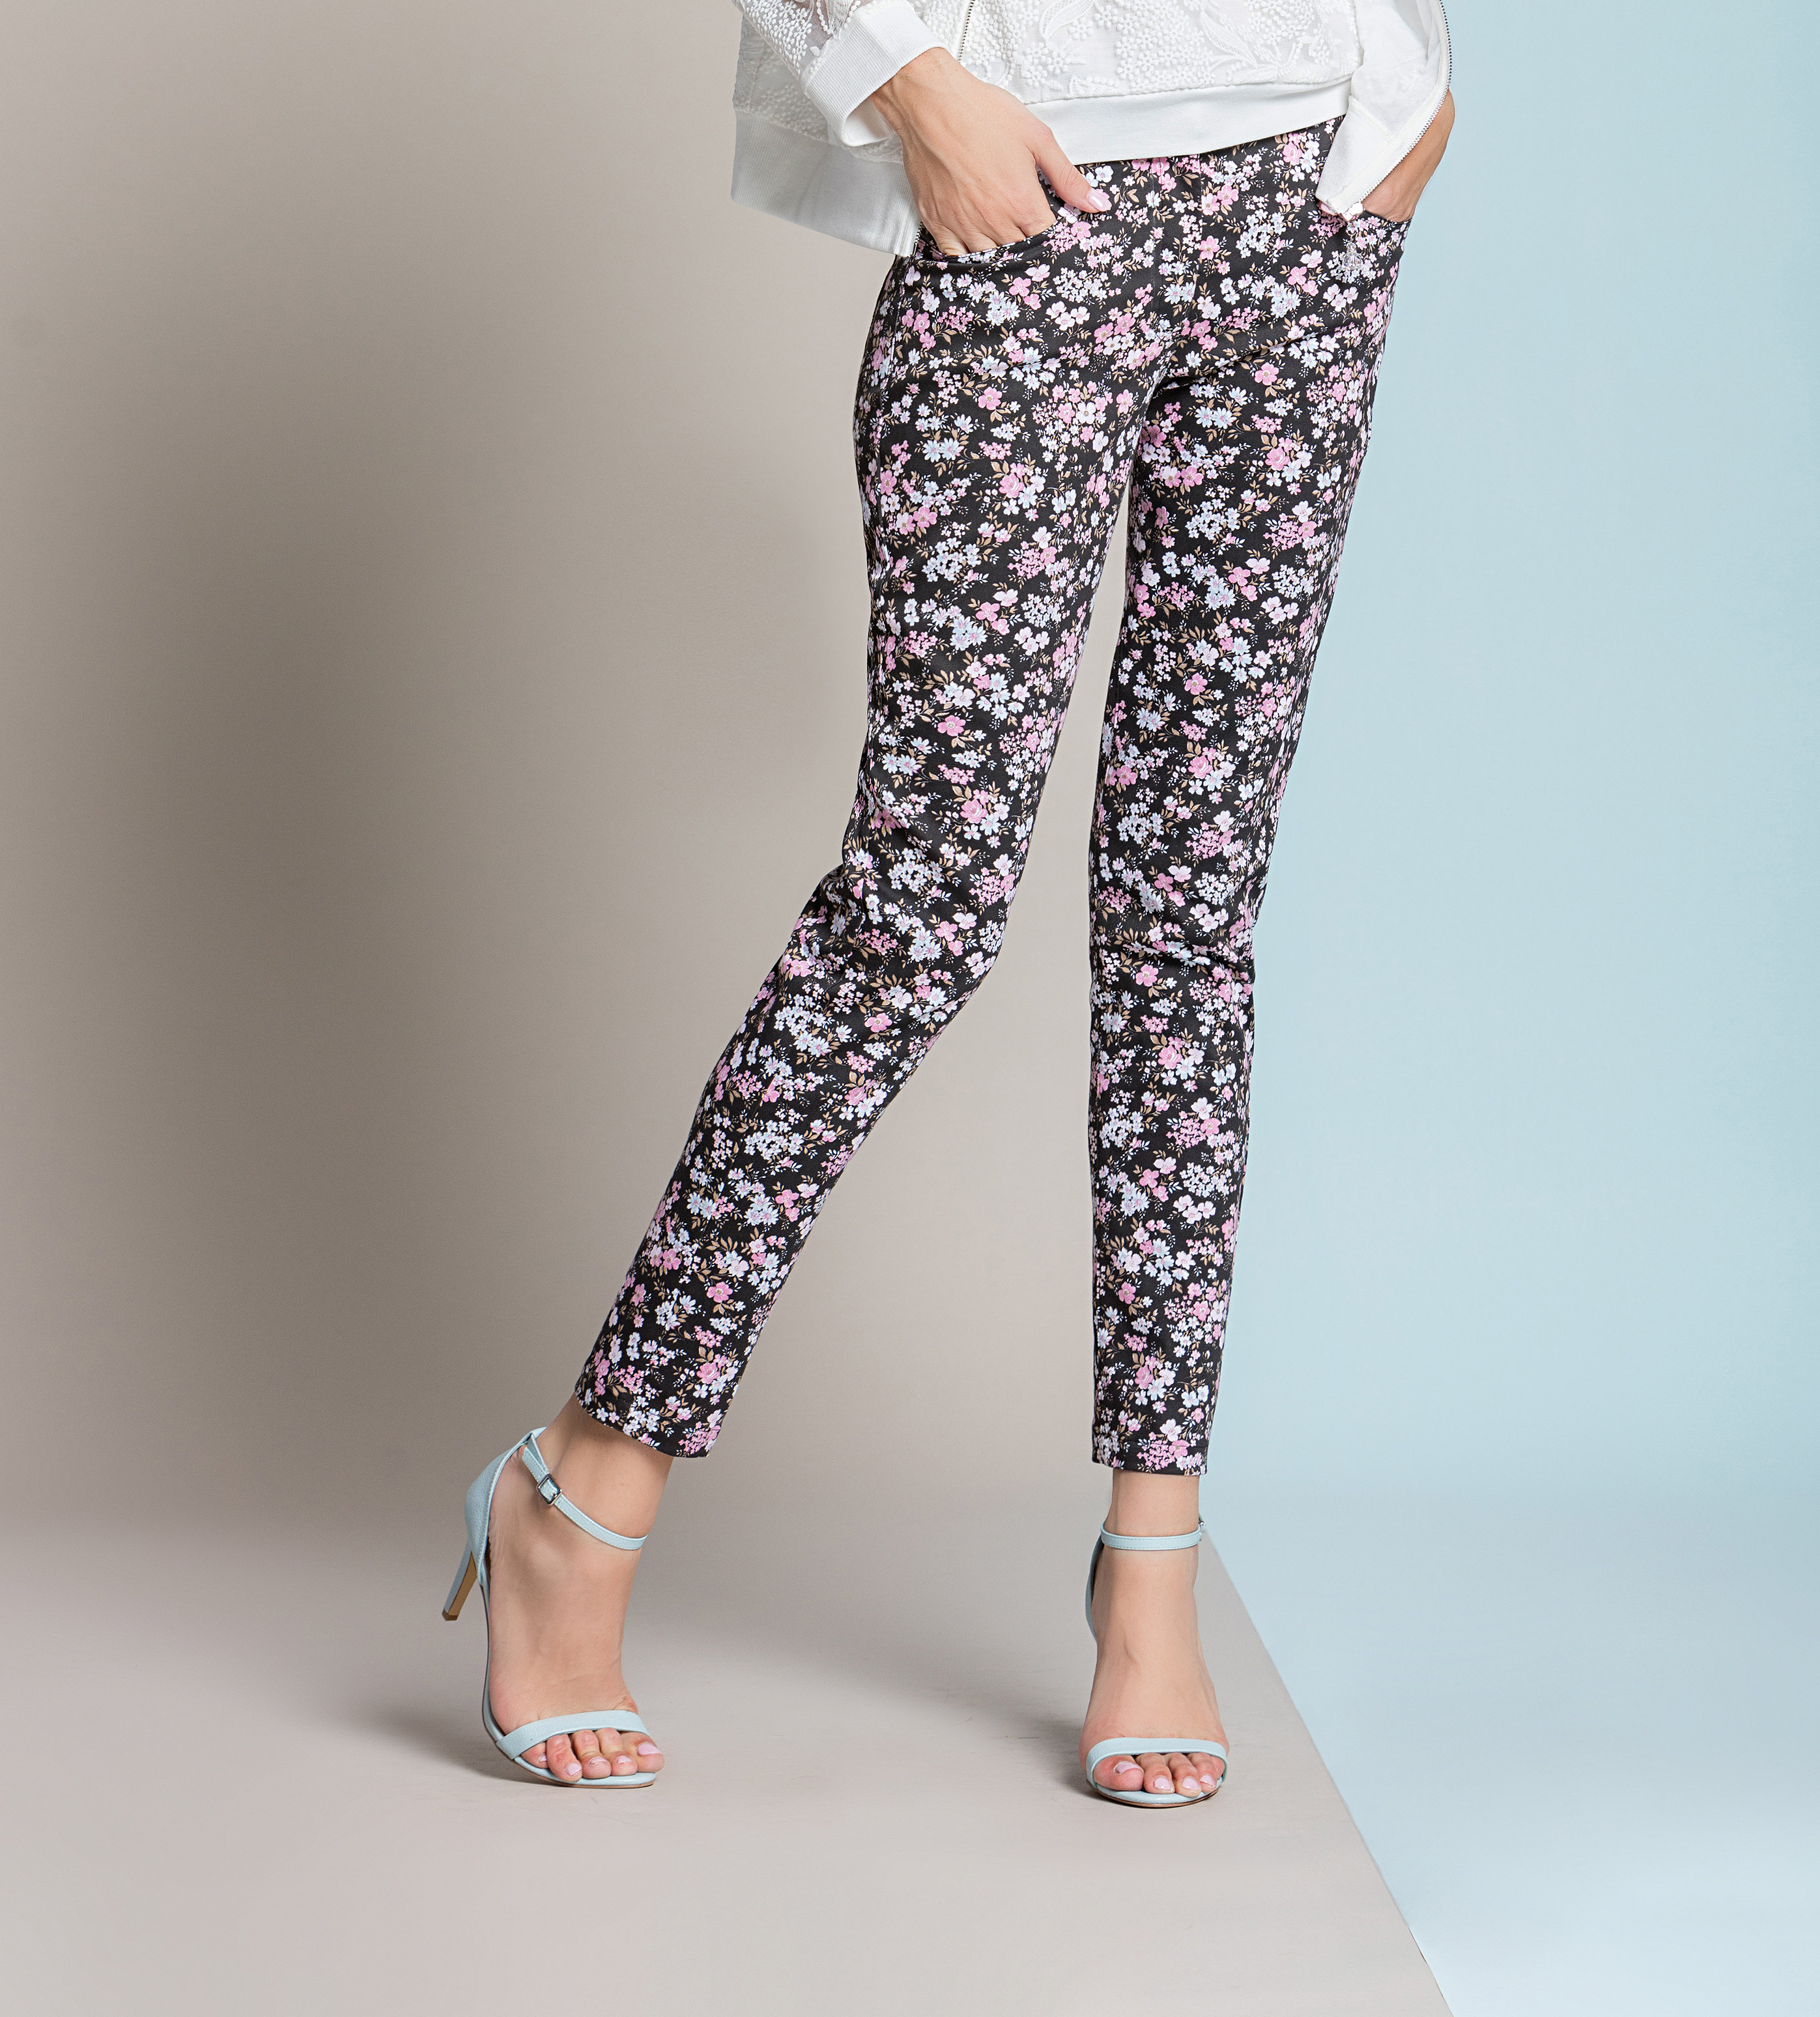 Paul Brial: Blush Flower Princess Seamed Cotton Pocket Pant SOLD OUT PB_GENTIANE